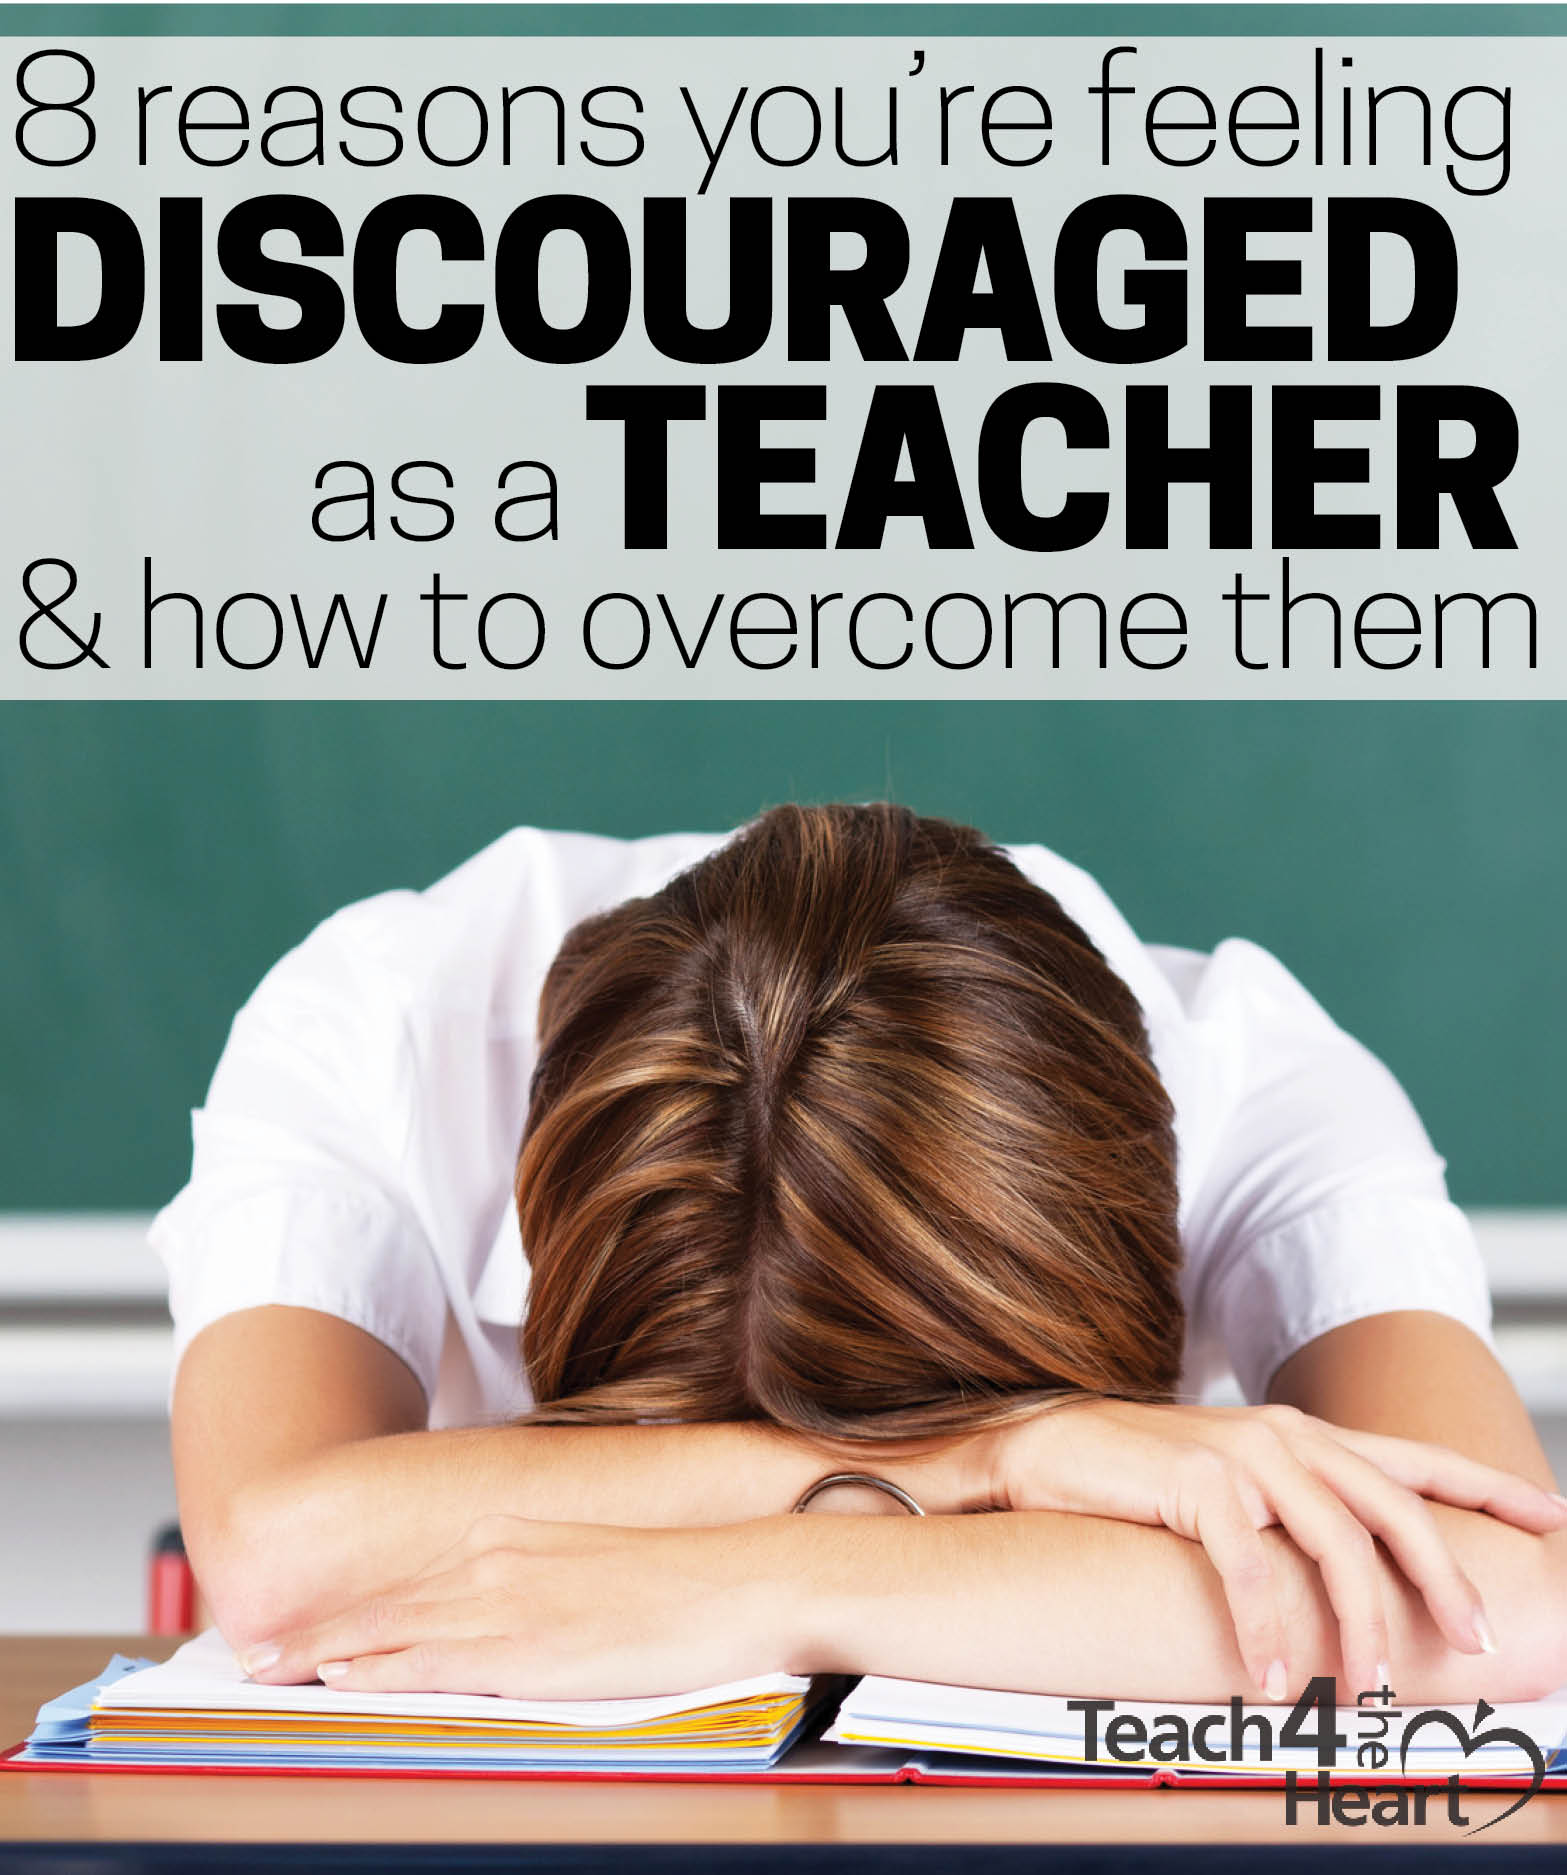 8 reasons you're feeling discouraged as a teacher & how to overcome them